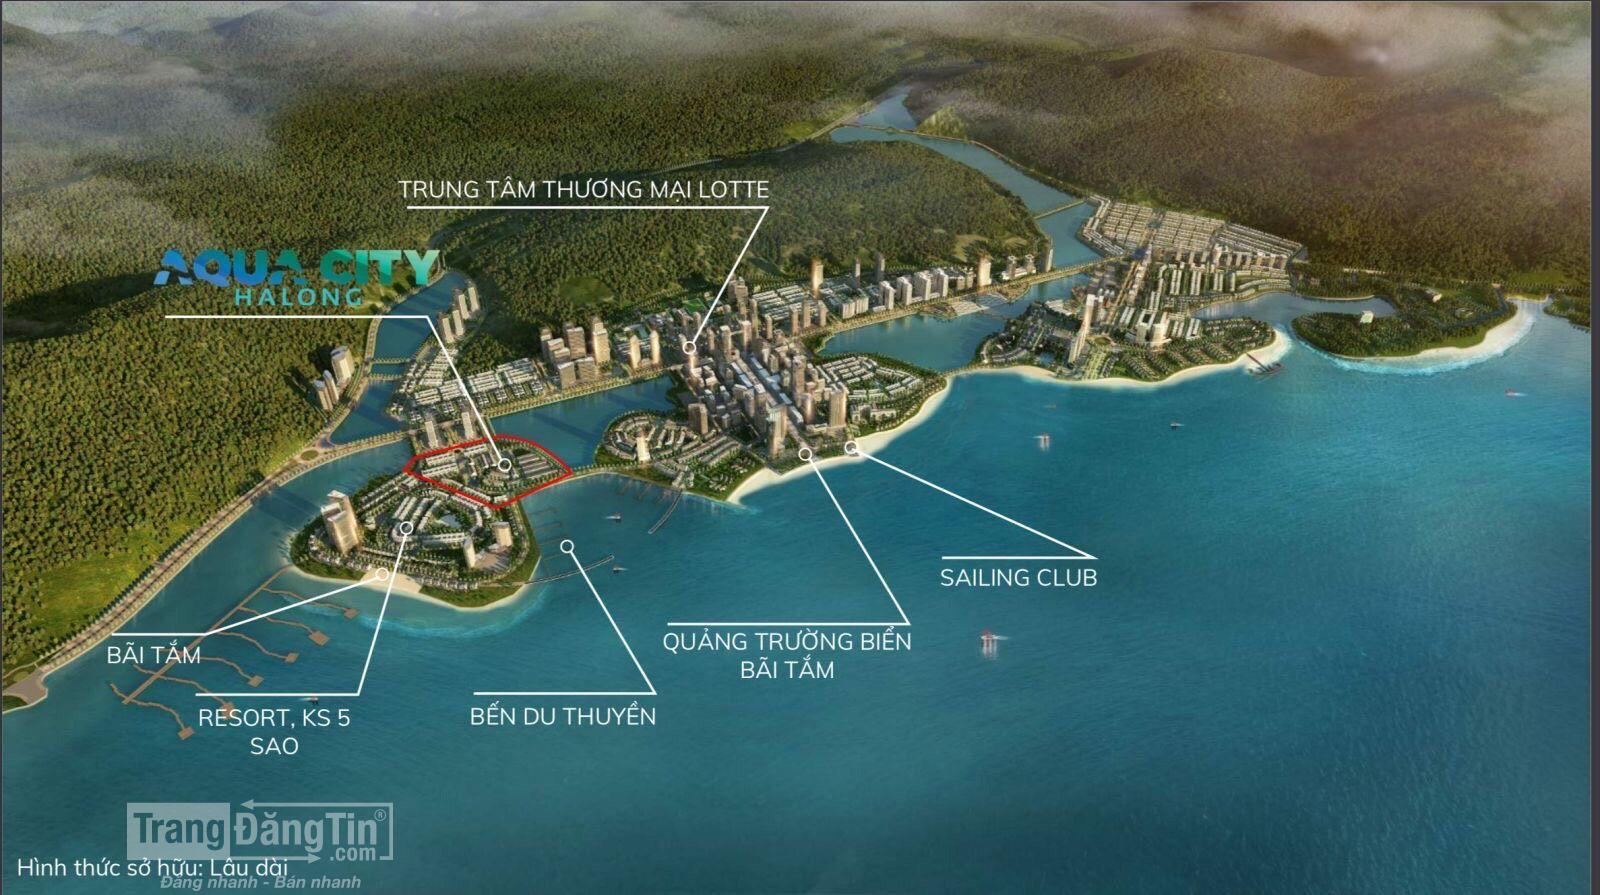 AQUA CITY HẠ LONG BIM GROUP